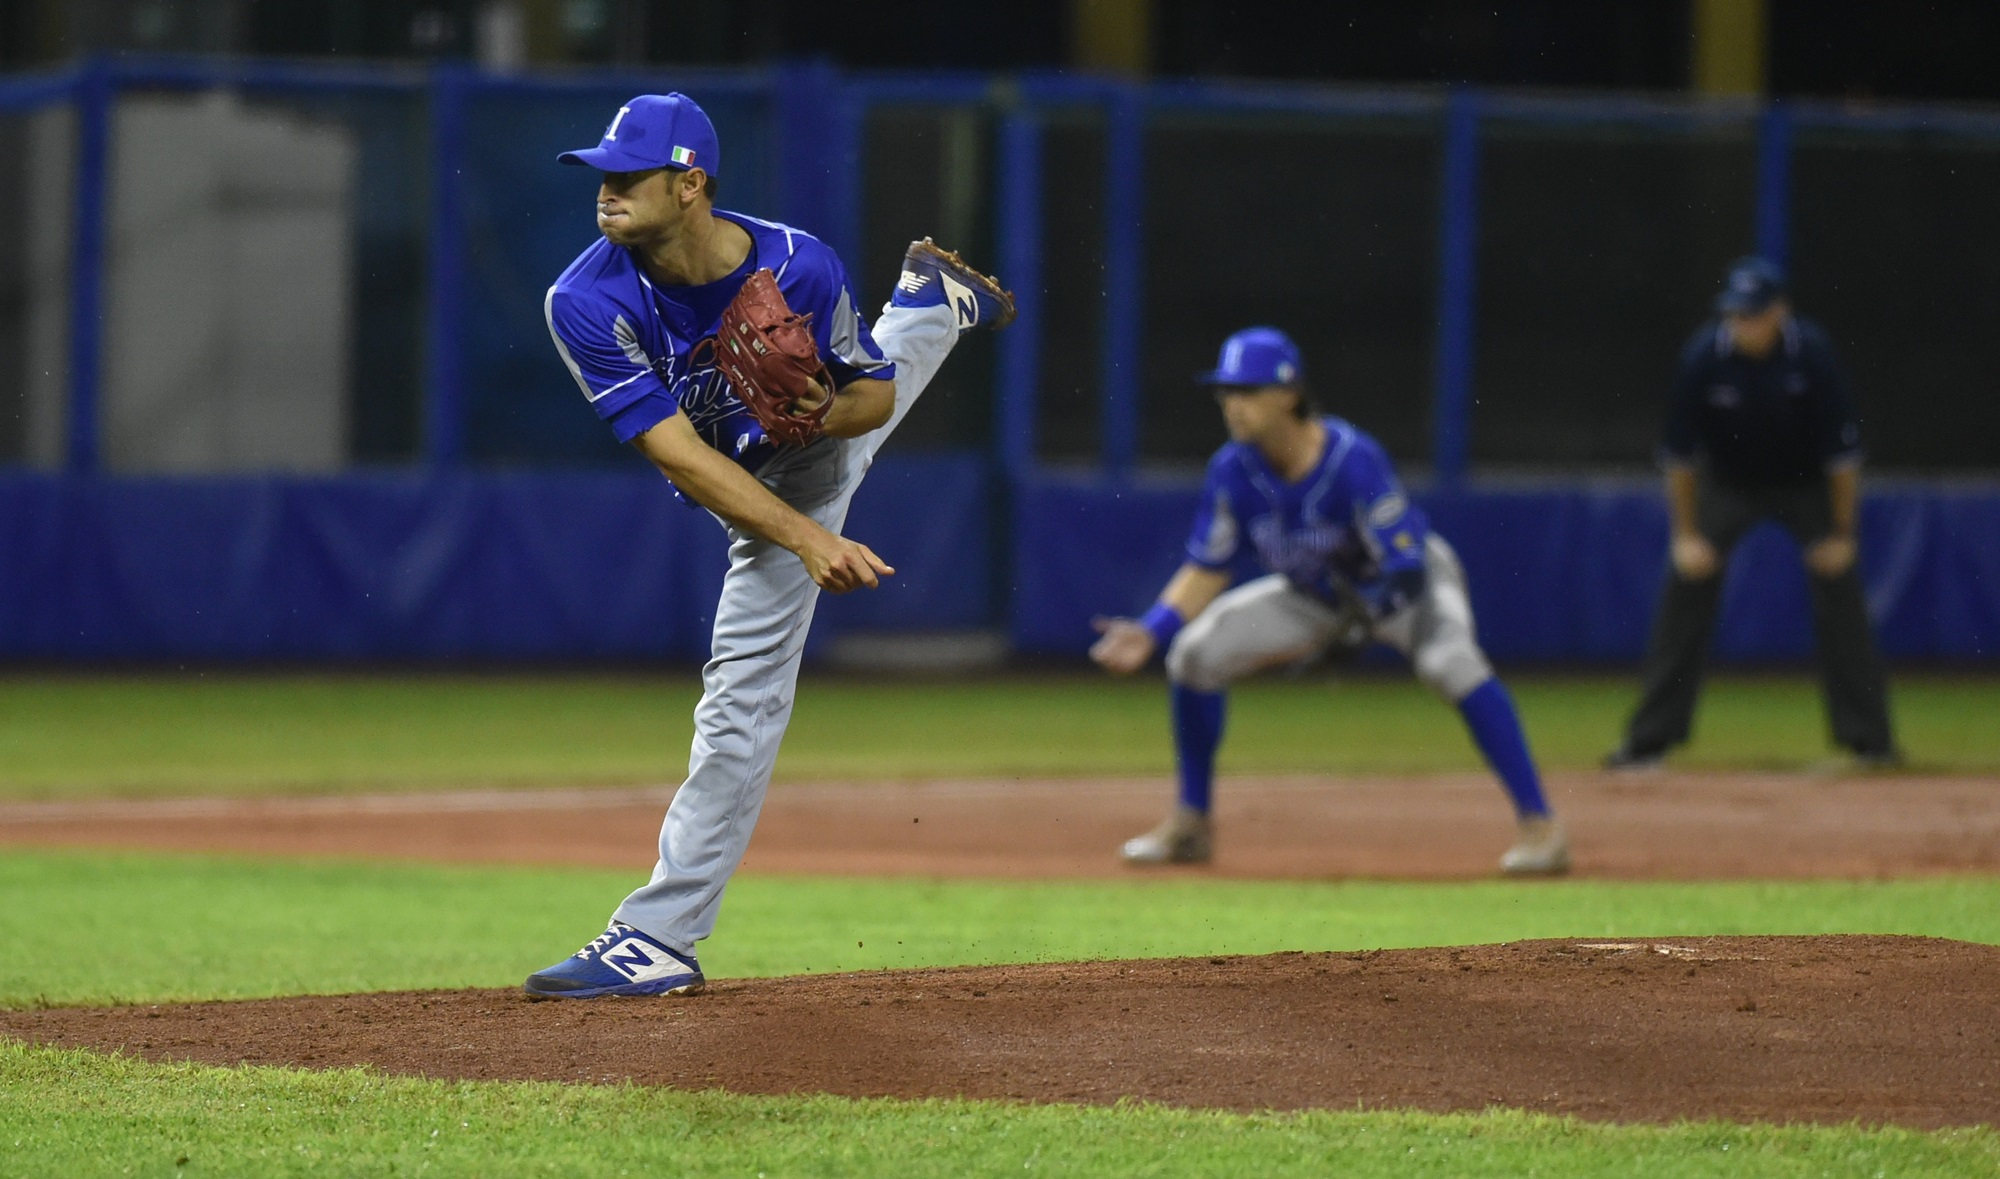 Former NPB starter Alessandro Maestri struggled early in the game